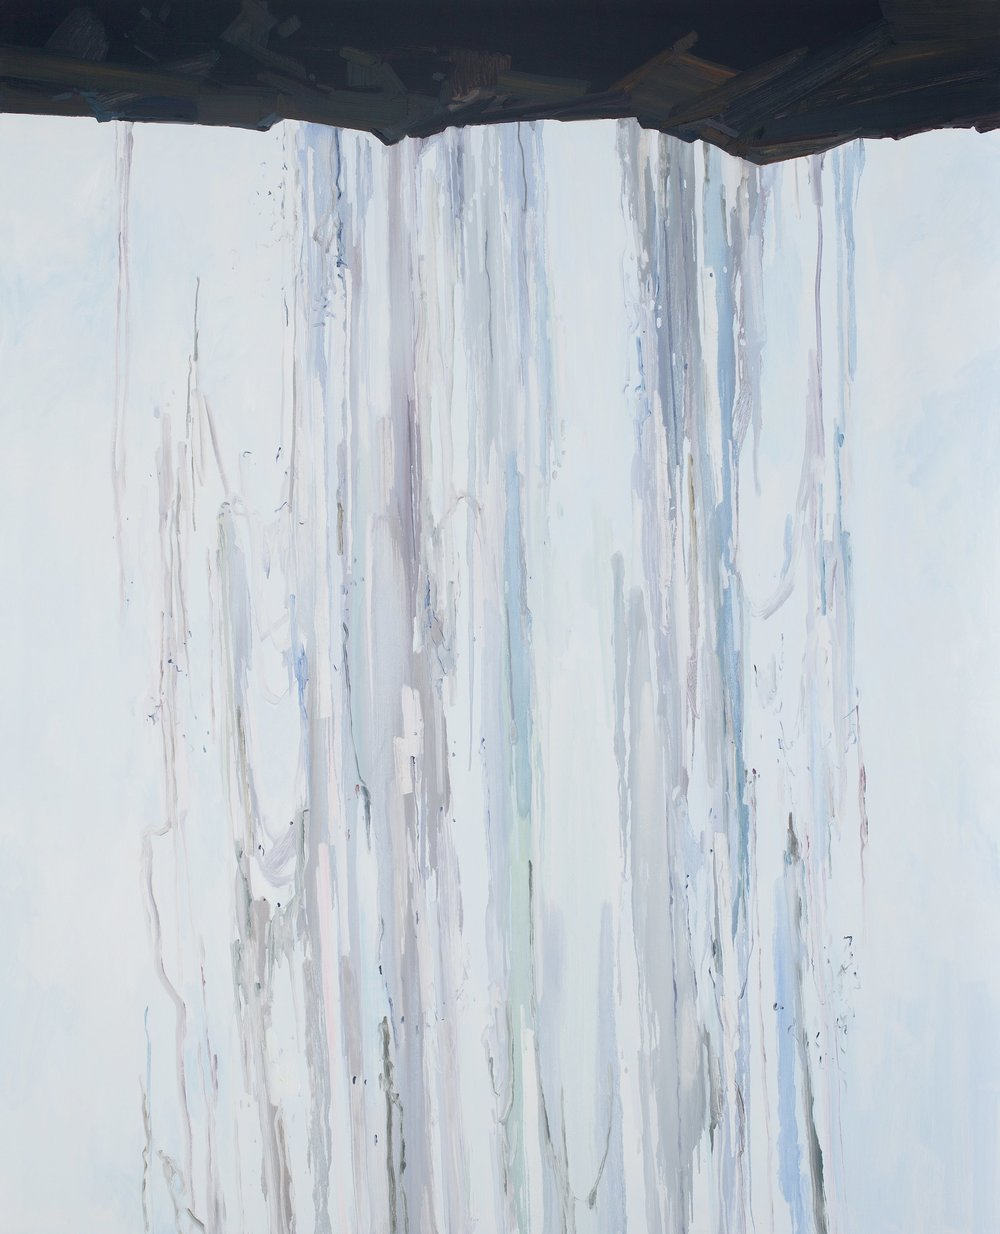 Waterfall, 2014, Oil on canvas, 96x78""